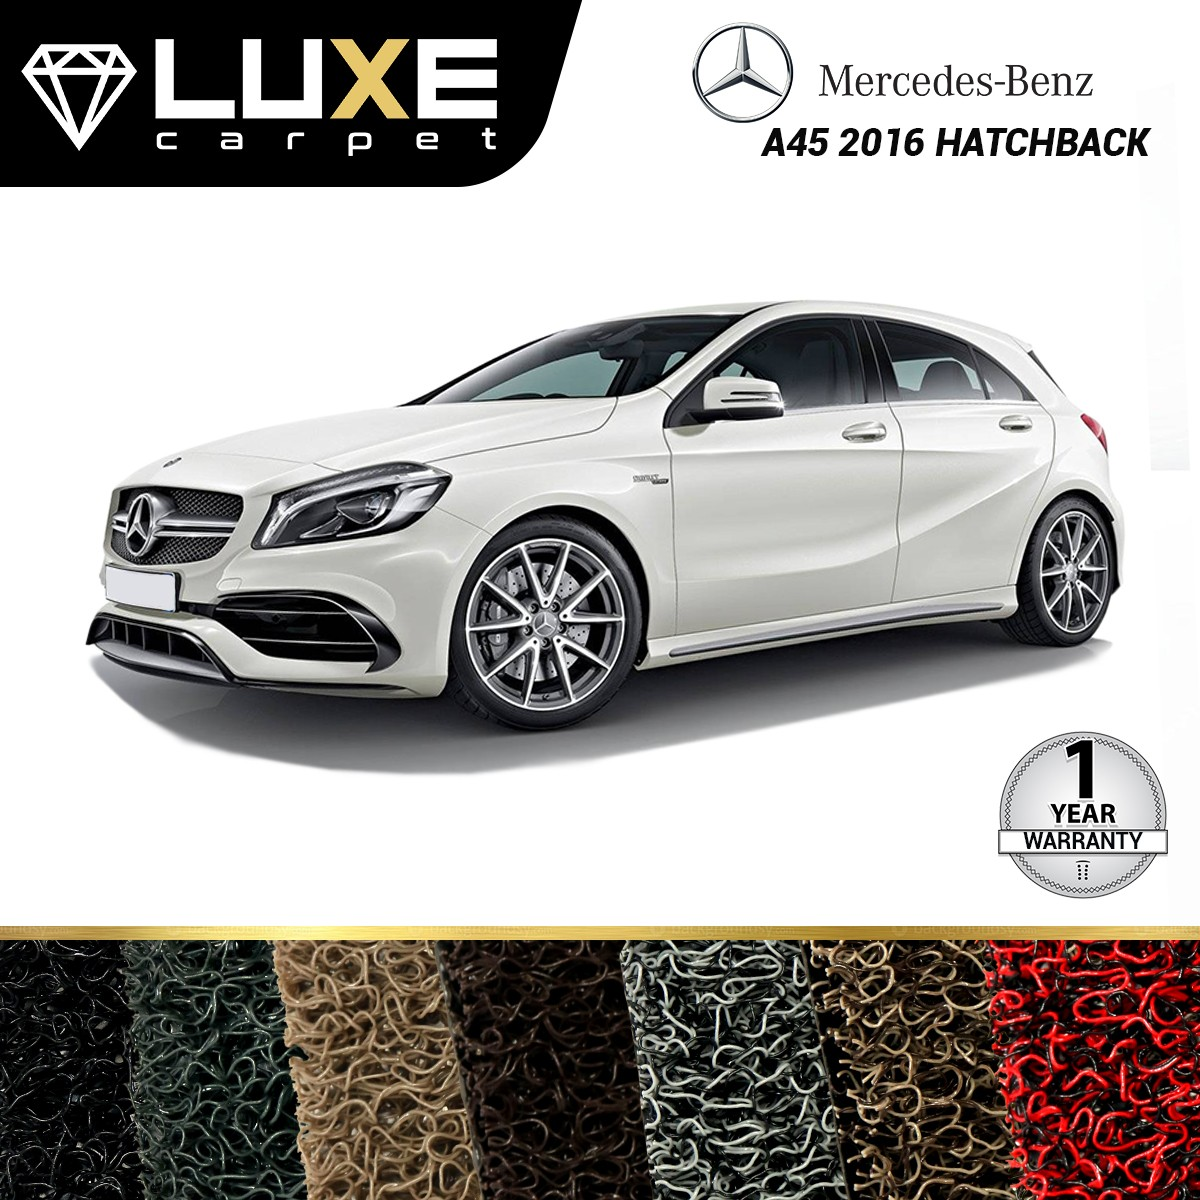 KARPET LUXE + BAGASI MERCEDES BENZ A45 HATCHBACK TAHUN 2016 - GOLD SERIES